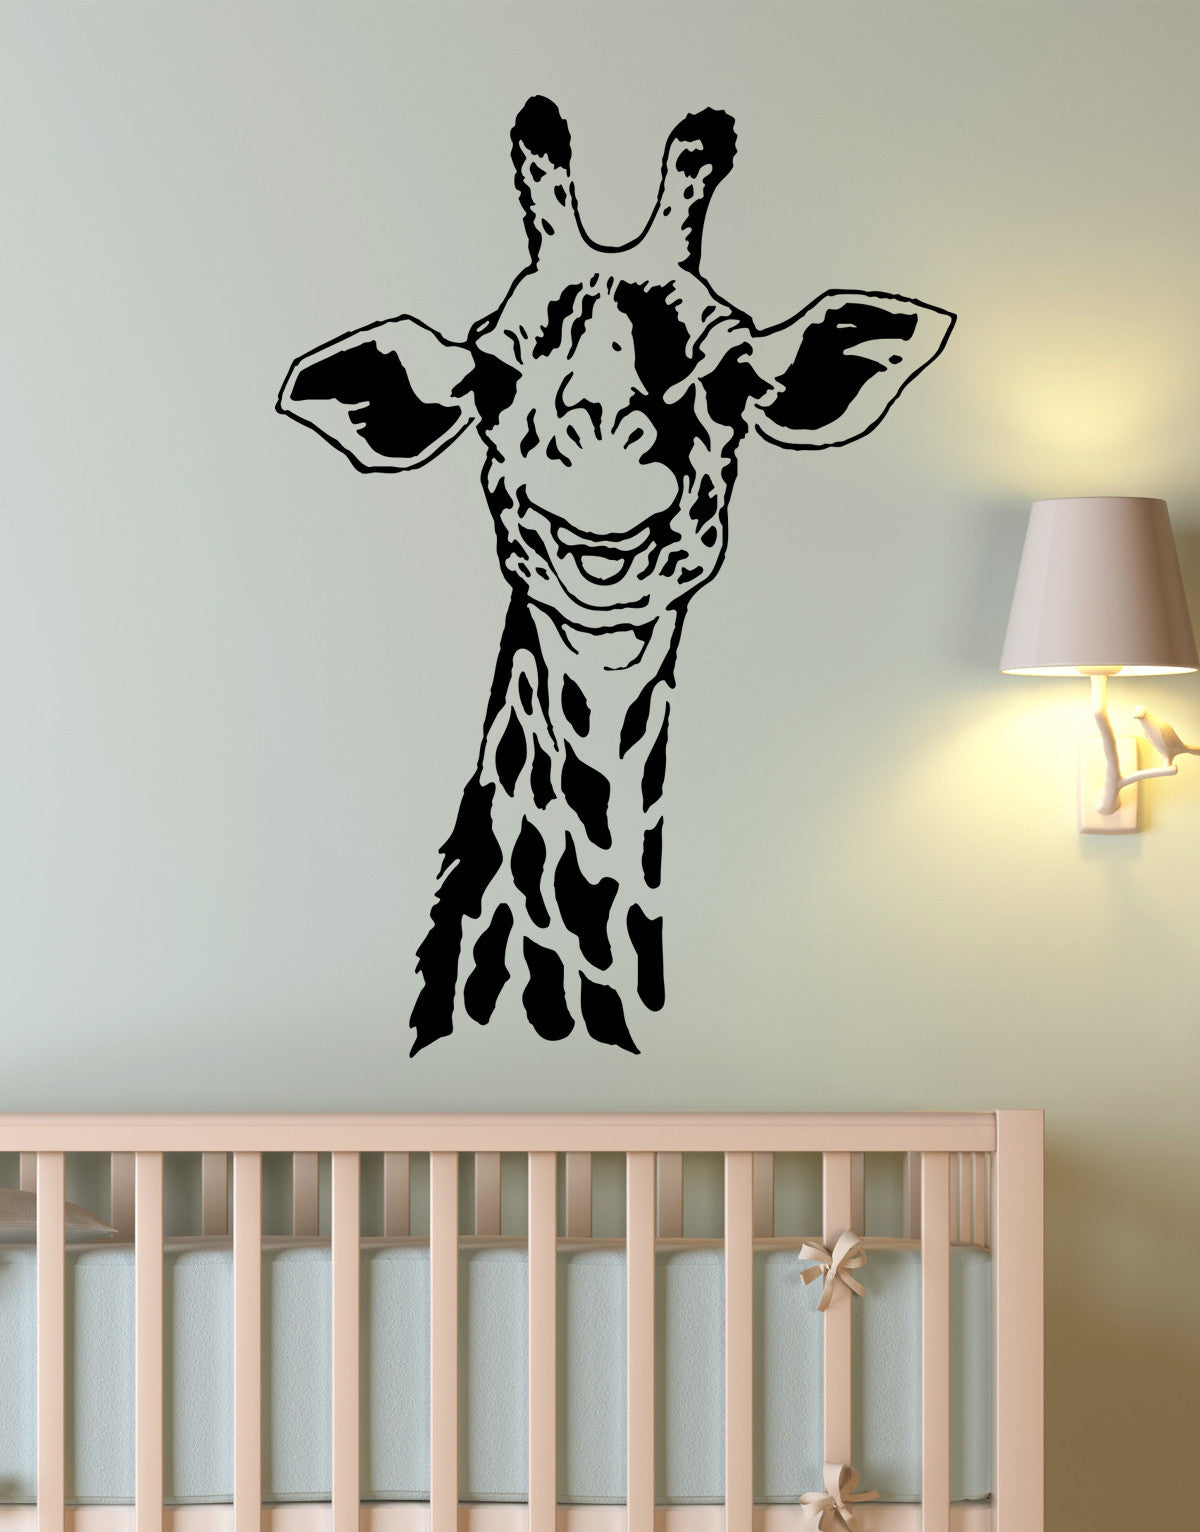 Giraffe Neck Wall Decal for Kids Room. Safari Jungle Theme Decor. #145